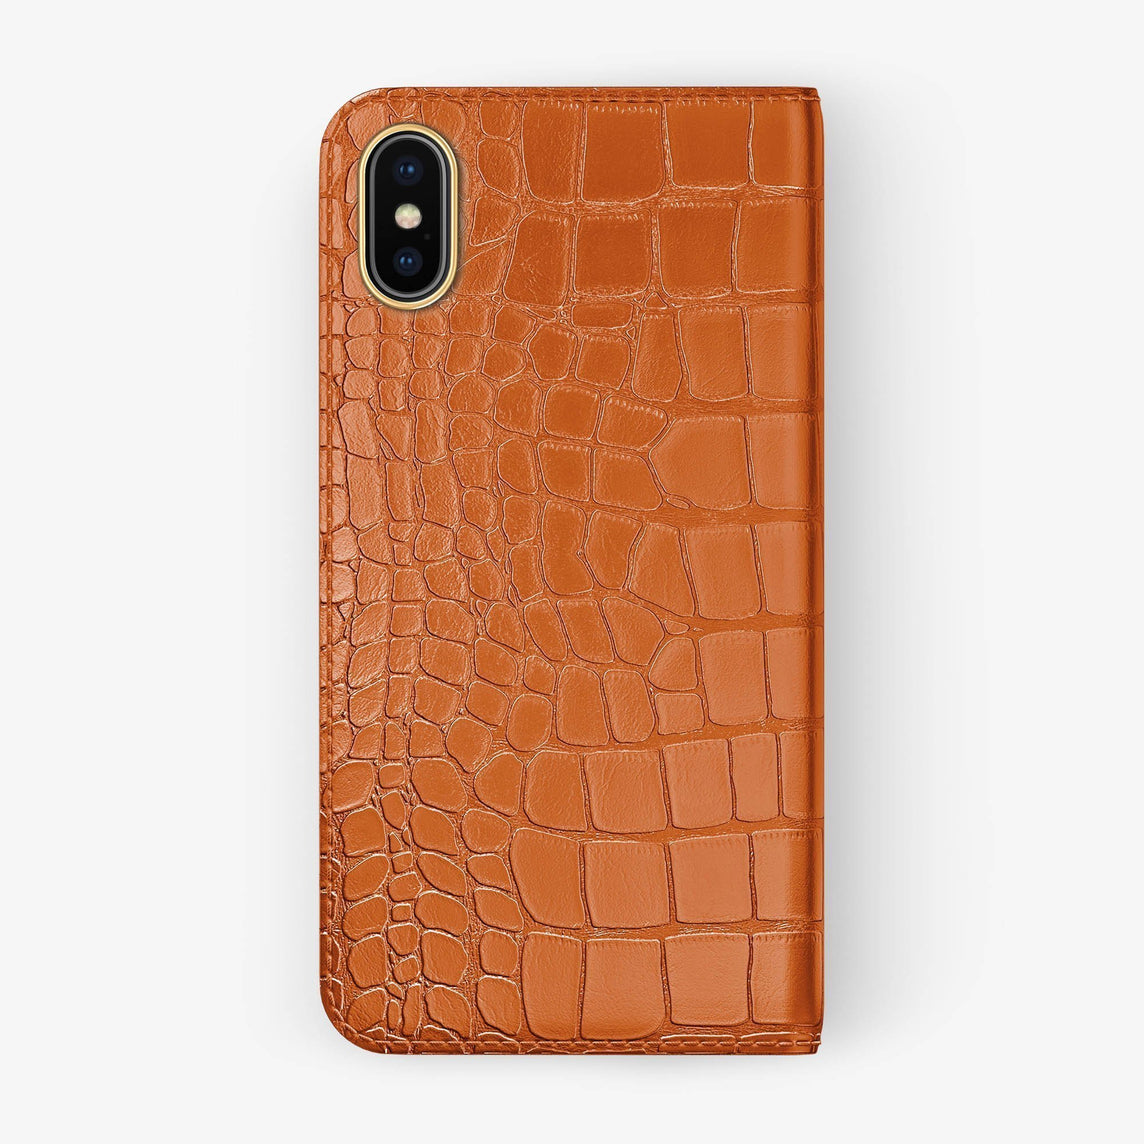 Orange Alligator iPhone Folio Case for iPhone XS Max finishing yellow gold - Hadoro Luxury Cases